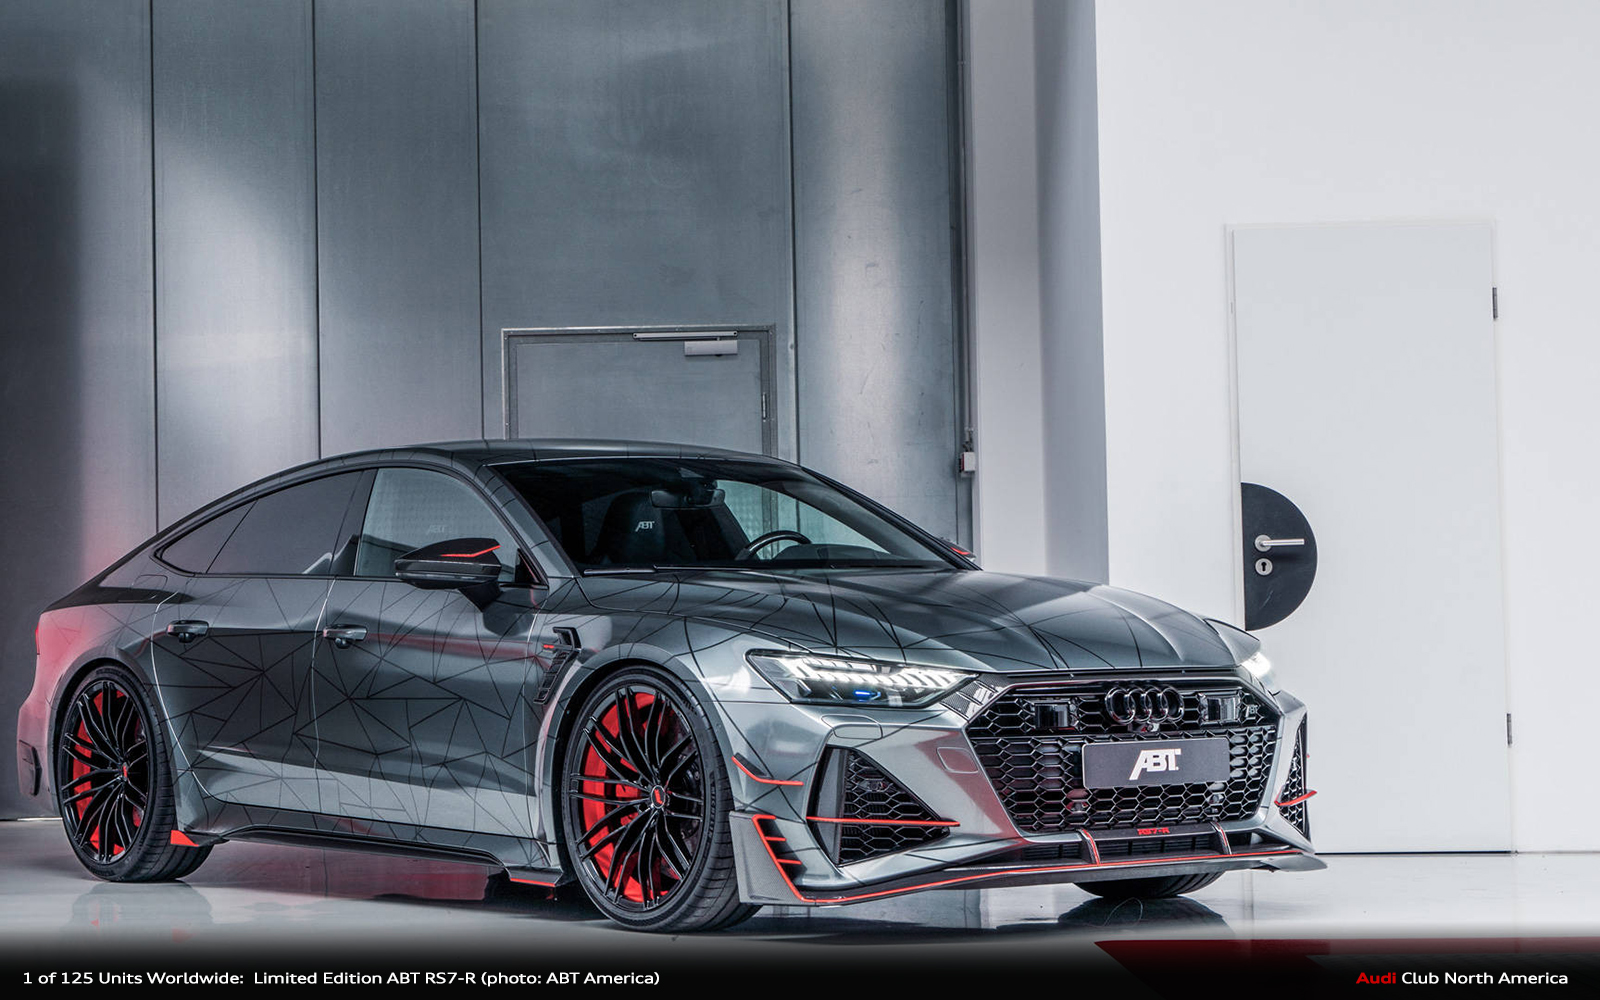 One of Its Kind - Limited Edition ABT RS7-R